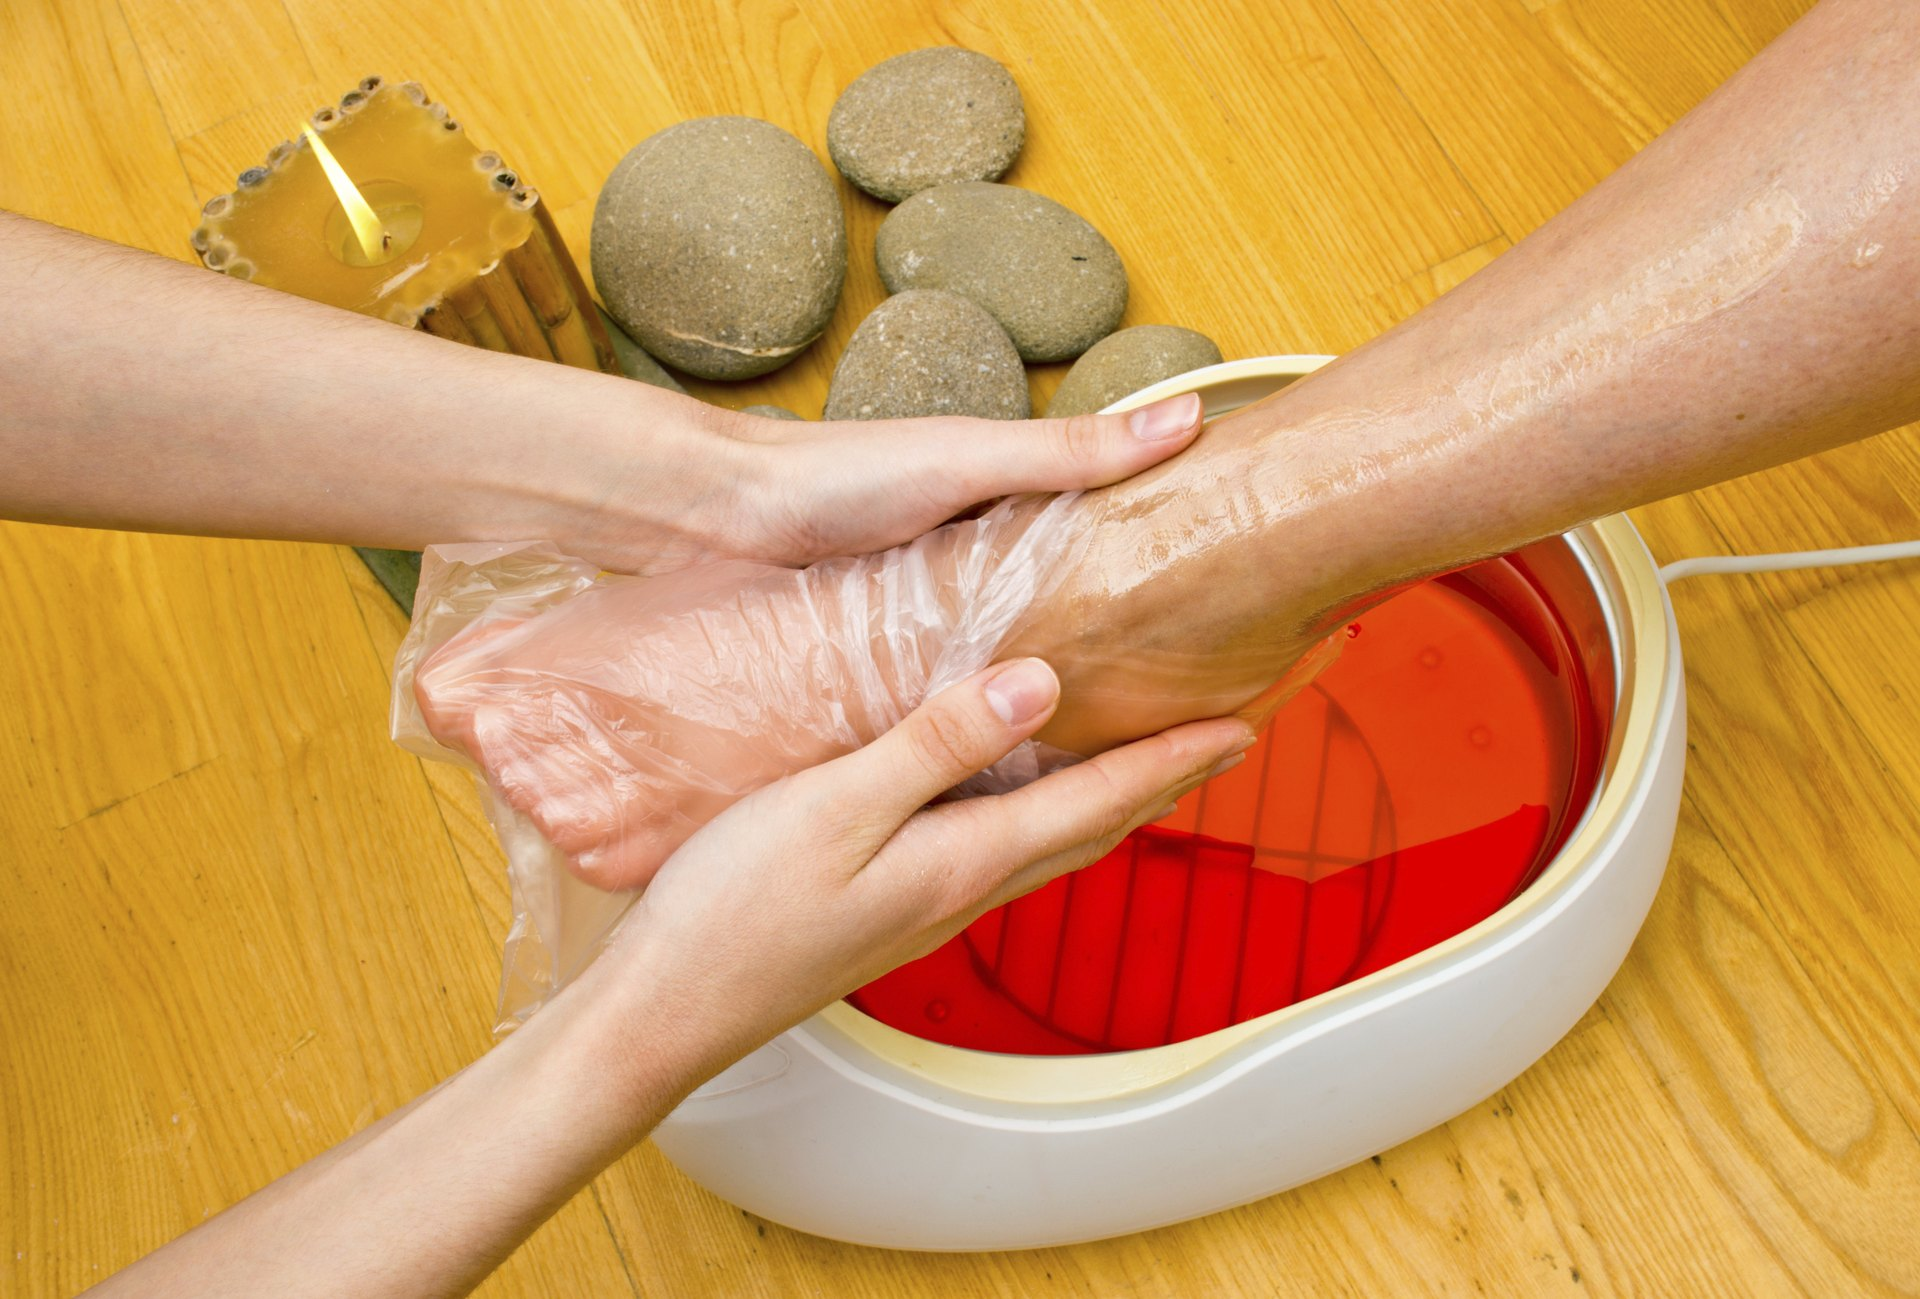 Paraffin Wax Treatment for Feet | LIVESTRONG.COM for Paraffin Wax Foot Bath  117dqh